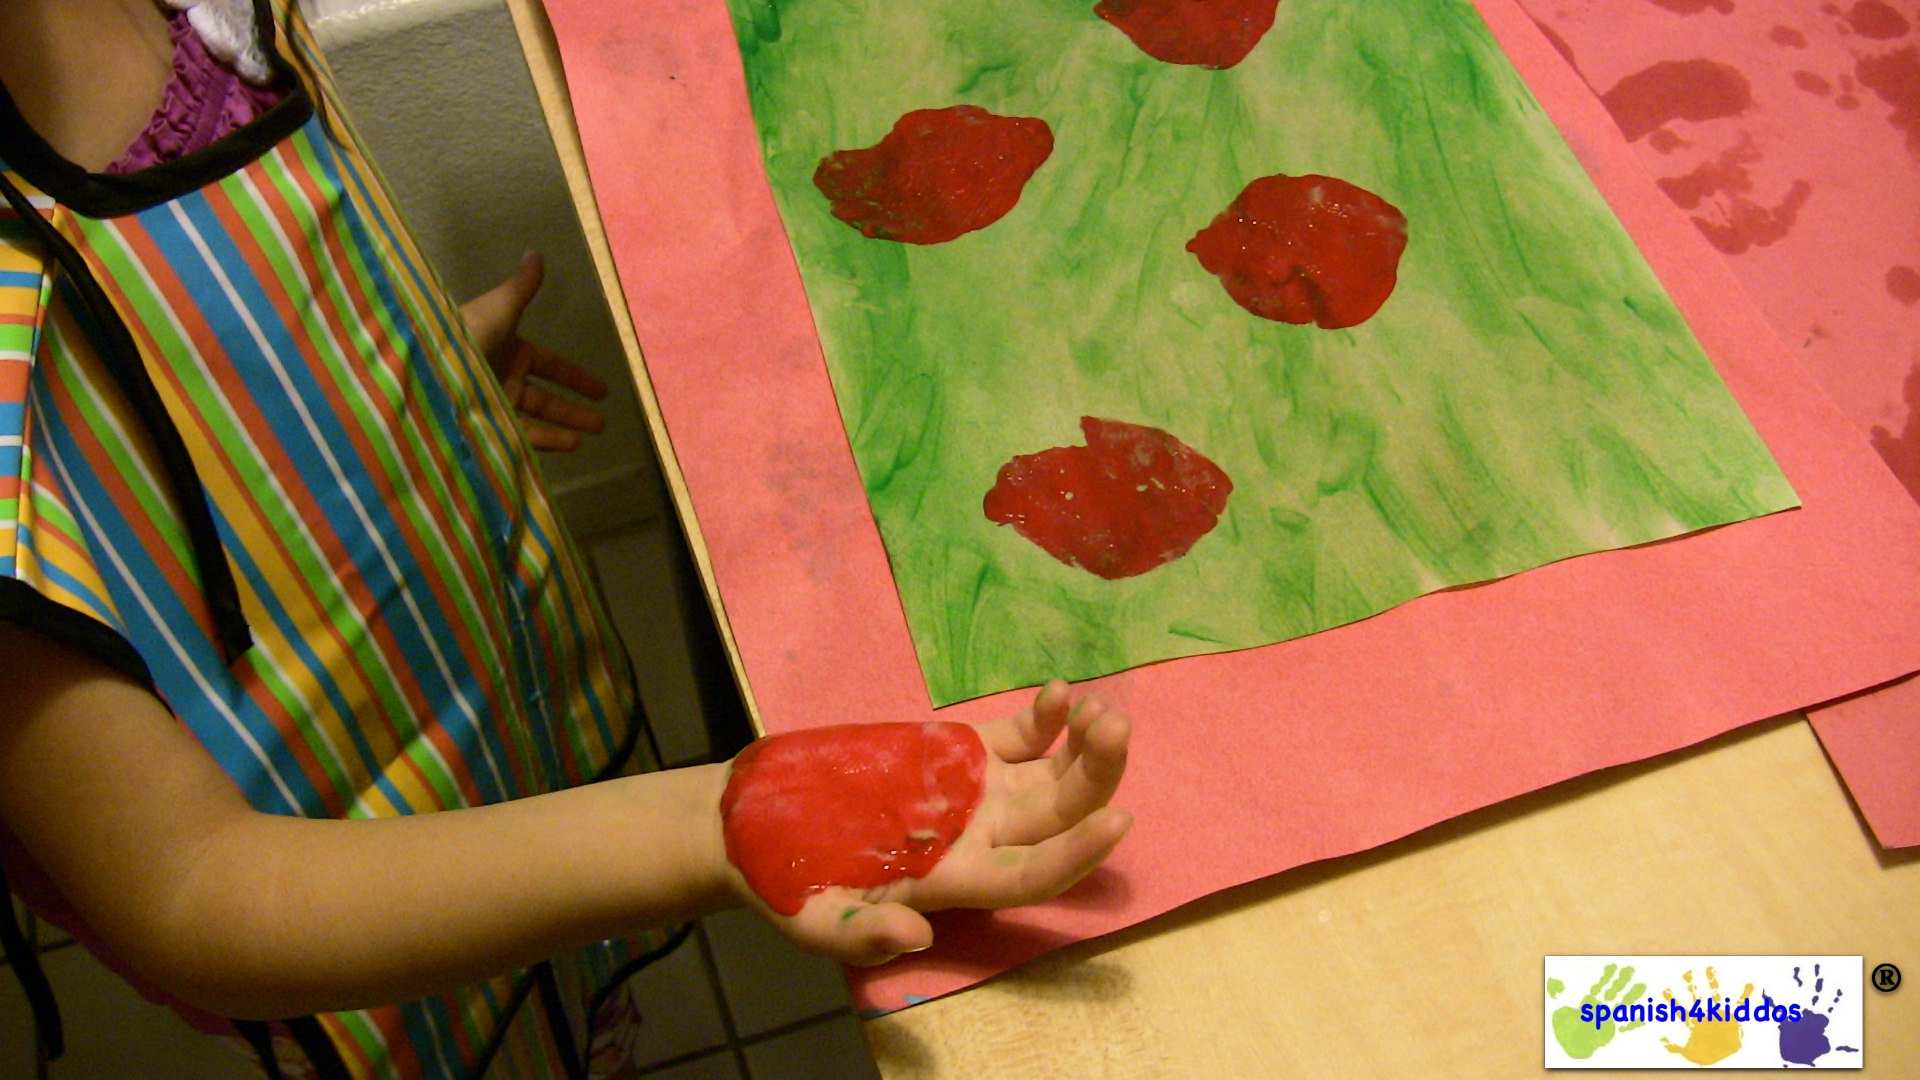 Finger Paint With Red Spanish4kiddos Educational Resources